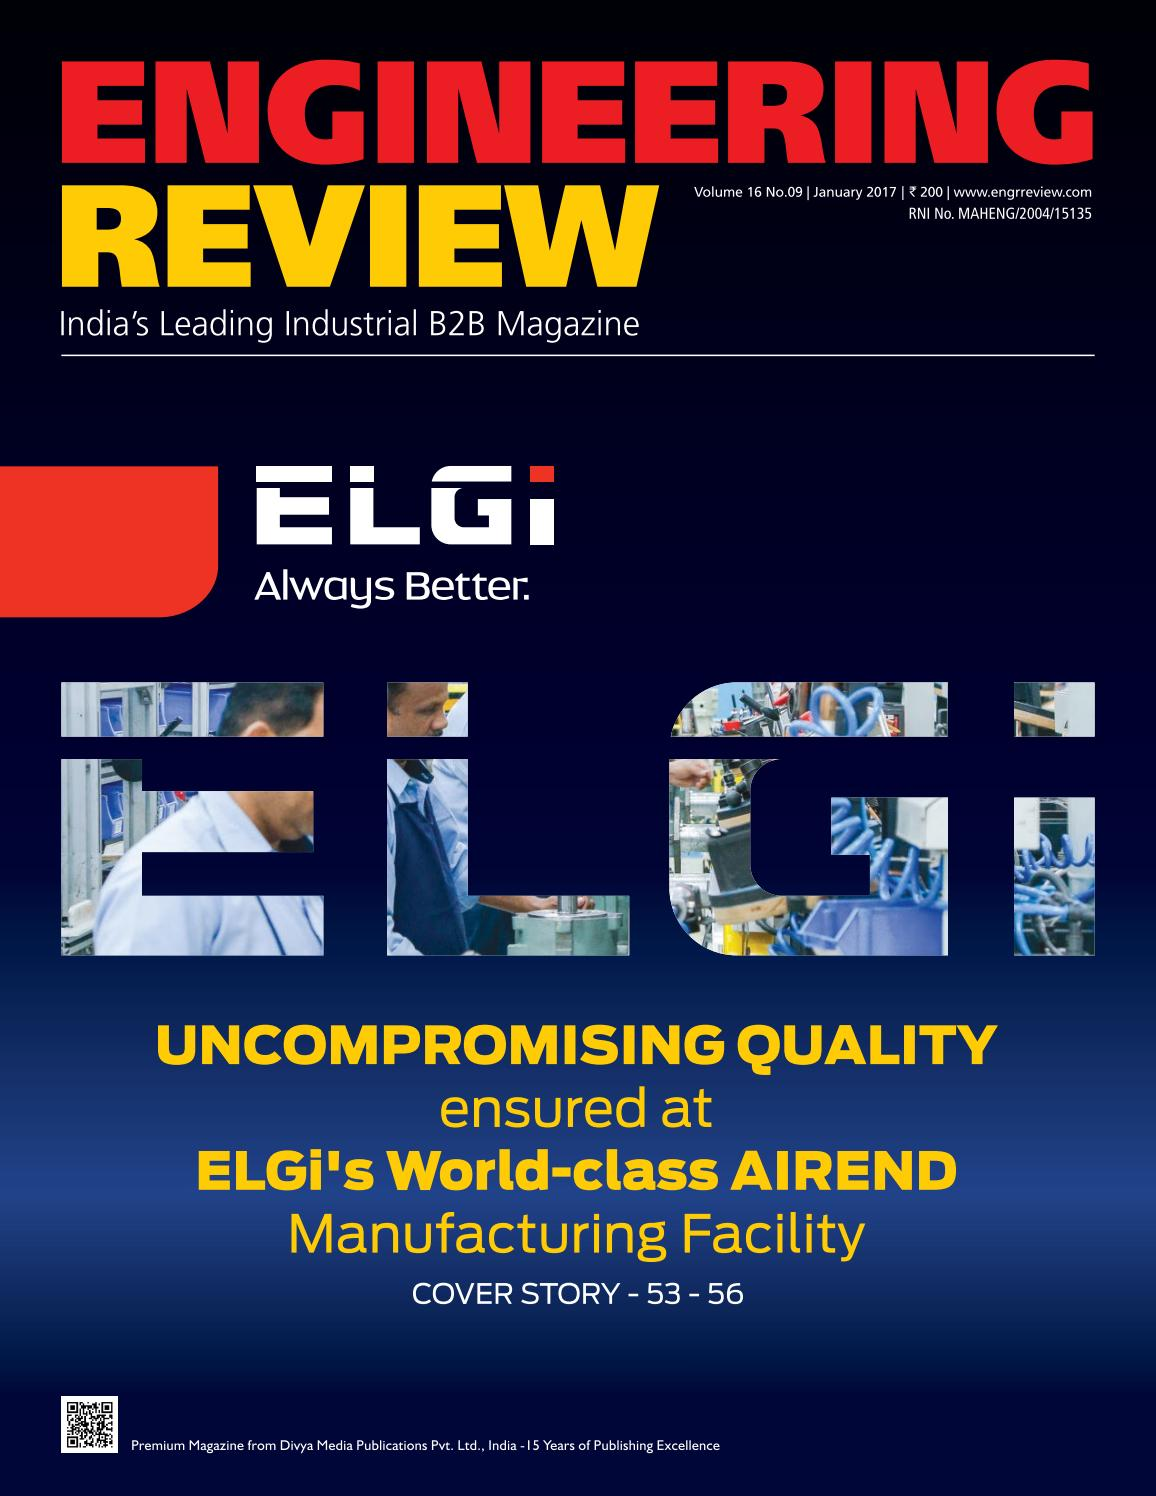 Engineering Review January 2017 By Divya Media Publications Pvt Filethree Ic Circuit Chipsjpg Wikimedia Commons Ltd Issuu